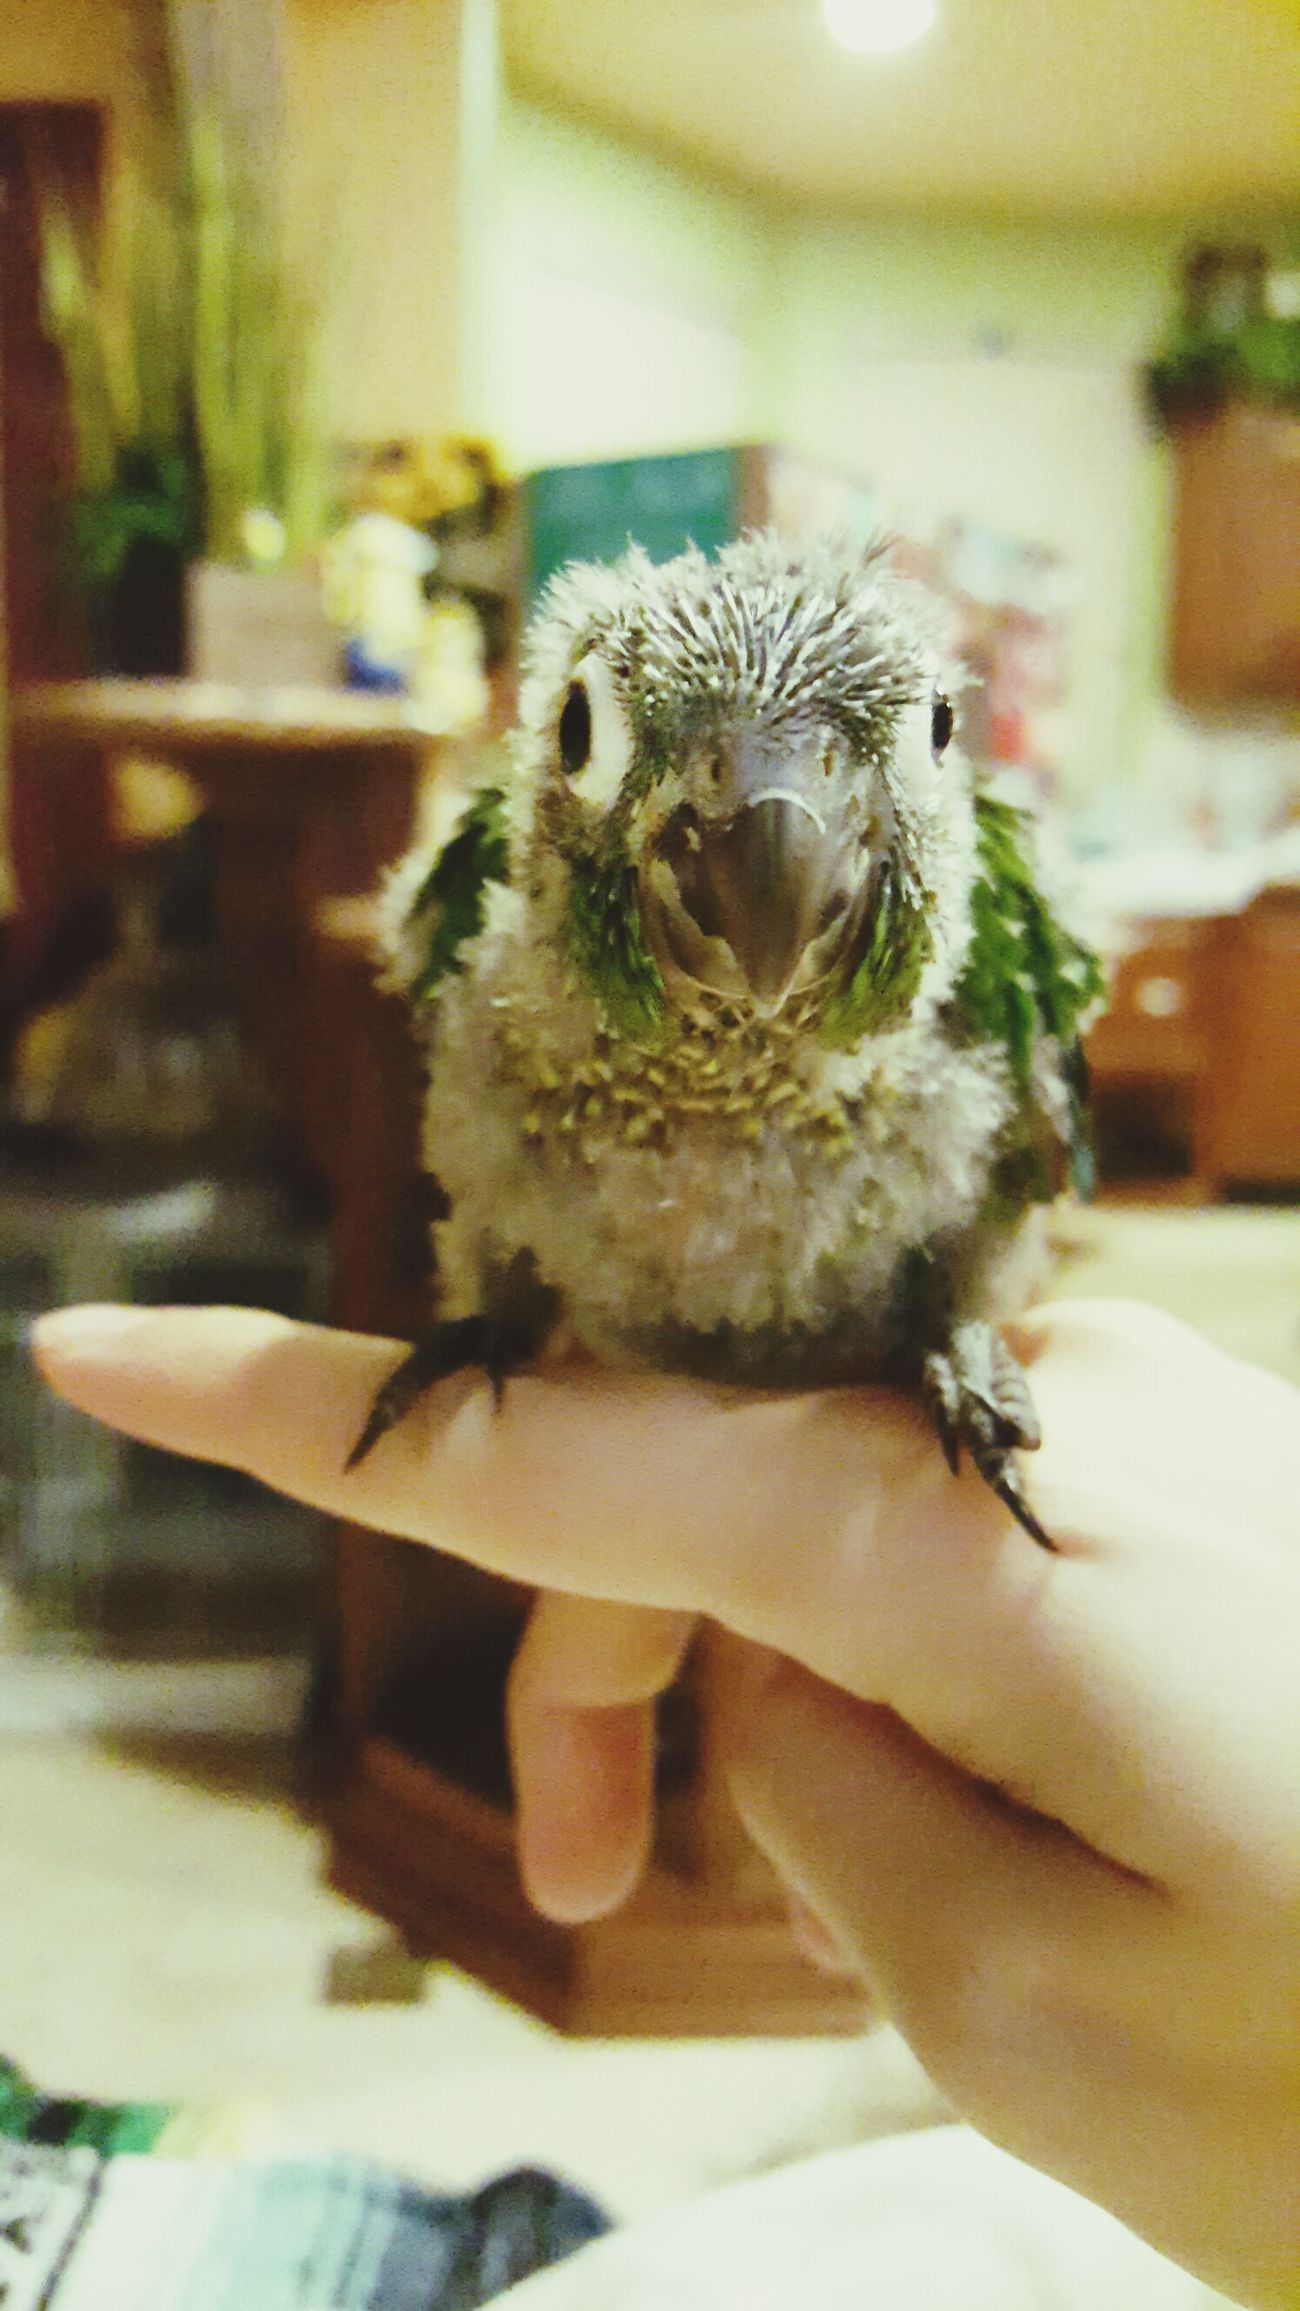 Puffy's first perch on my finger <3 Still clumsy but very cute Hanging Out Check This Out Cheese! Enjoying Life Greencheekconure Cutepets Cute Baby Conure Birds_collection Bird Photography Birds Petlove  Pet Life  Pet Portrait Petlover Pet Love Pets Corner Pet Photography  Cute♡ Cuteness